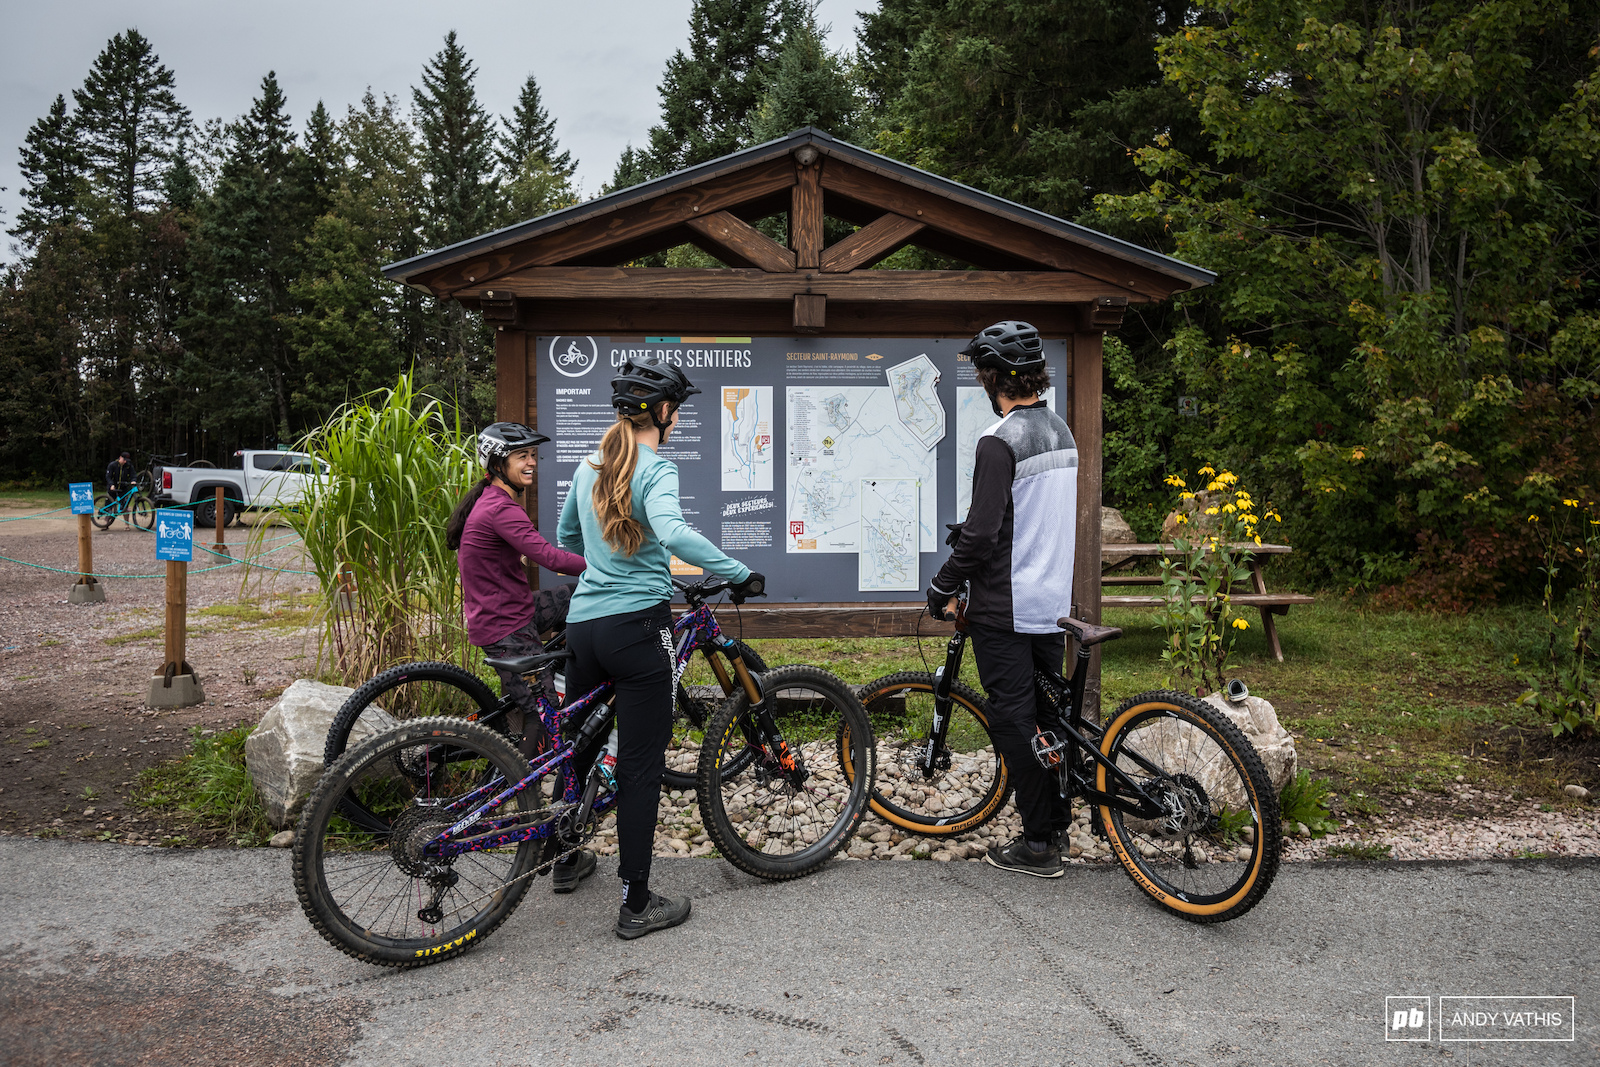 Map checks here are pretty essential considering the mass amount trails you can ride and combine.